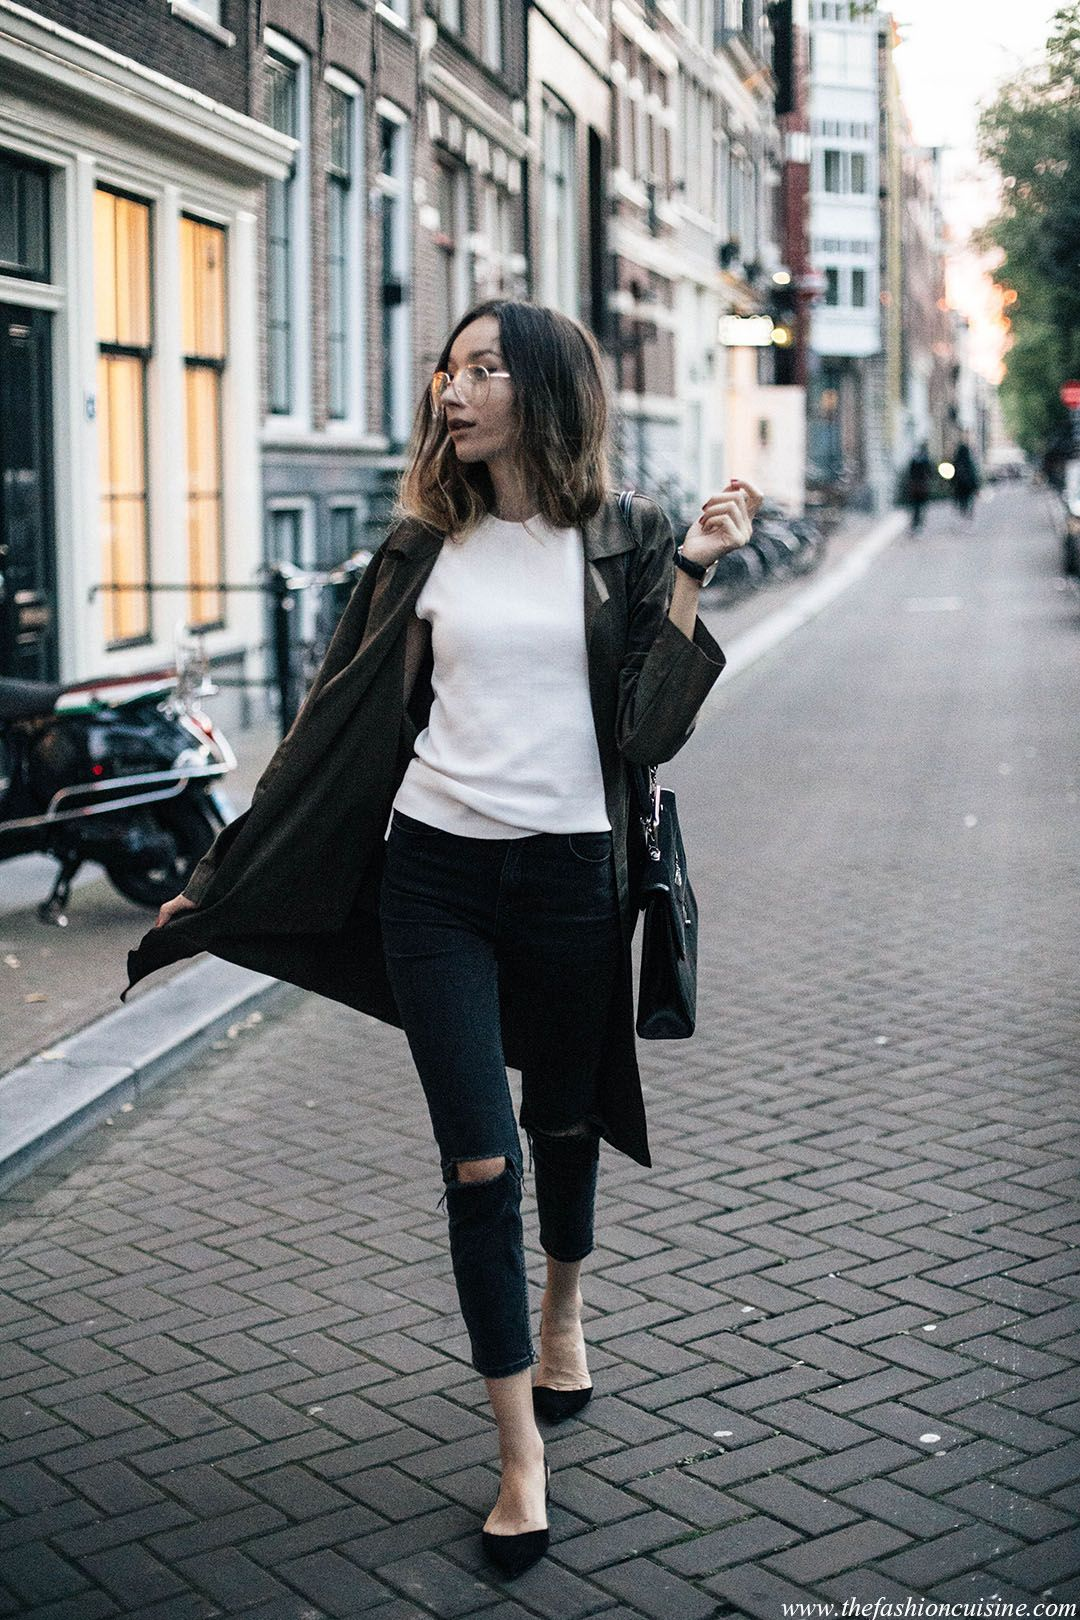 minimal-fall-look-suede-khaki-green-coat-aviator-glasses-fashion-blogger-street-style-tumblr-girl-amsterdam-photography